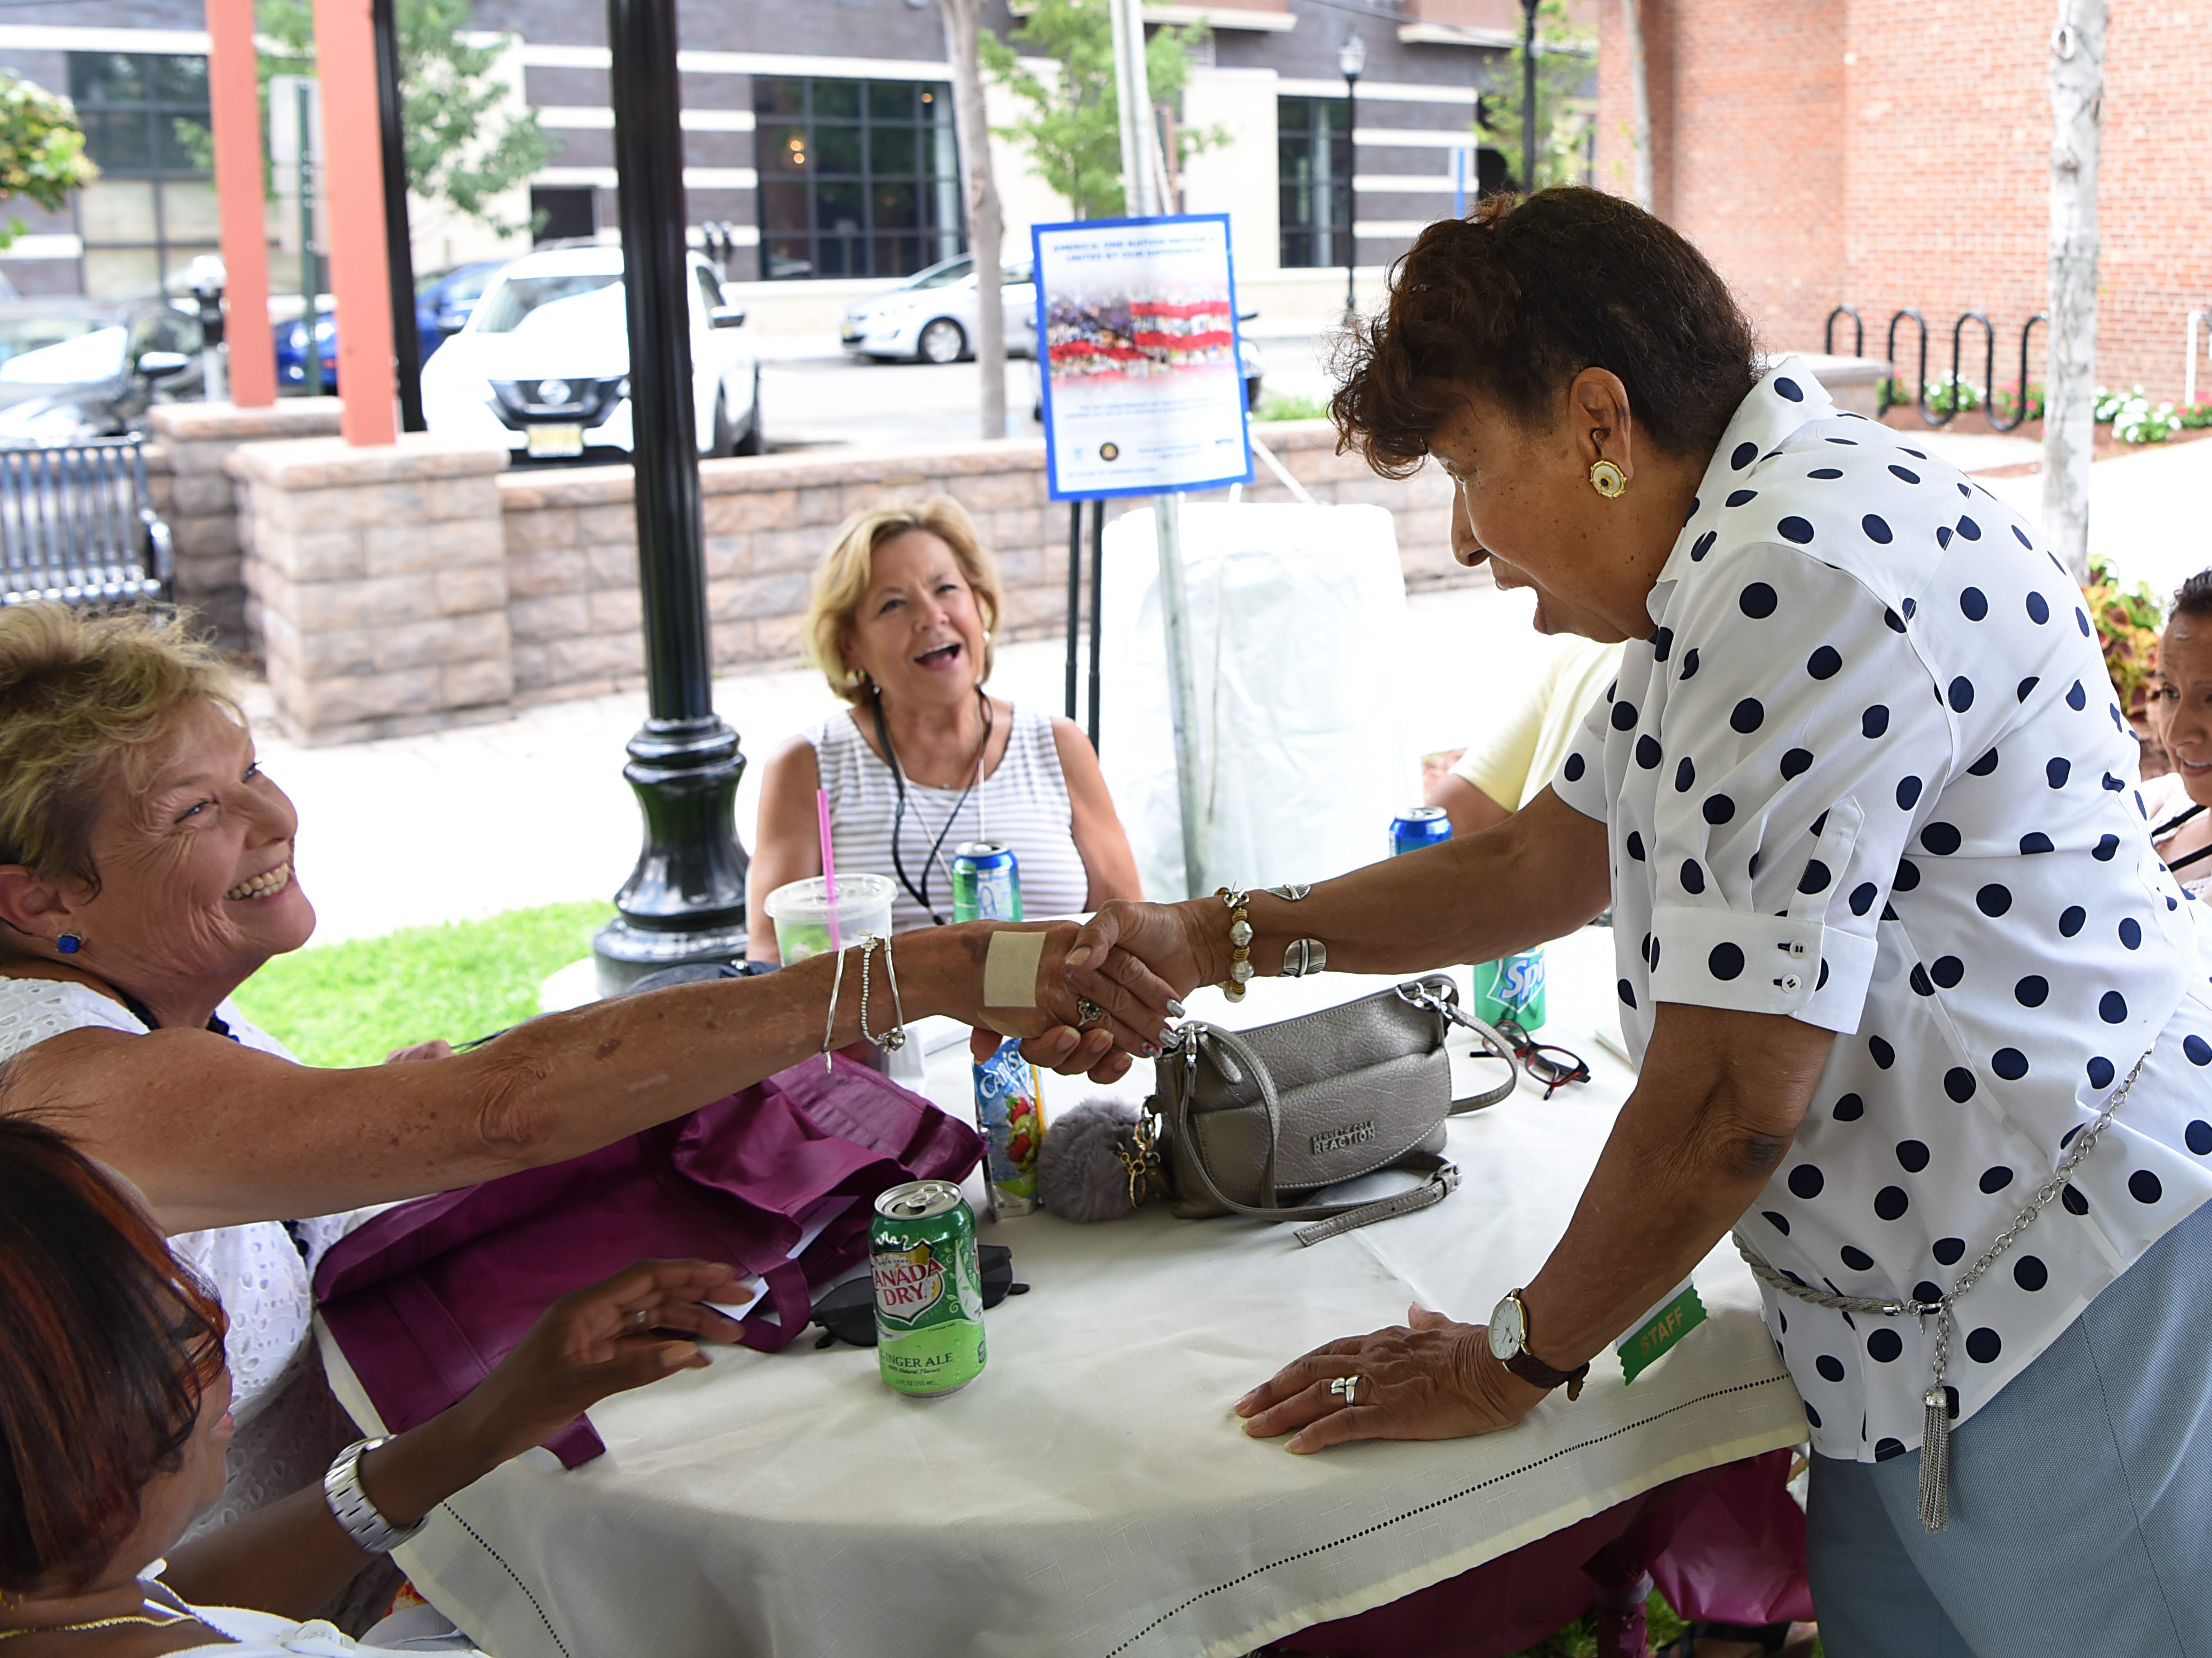 (From left) Roxanne Barreto, Jayne Ace-Bosgra, Sue Paletta, Lee Porter and Adriana Tobar. Fair Housing Council of Northern New Jersey holds a picnic in Hackensack on Friday August 10, 2018.